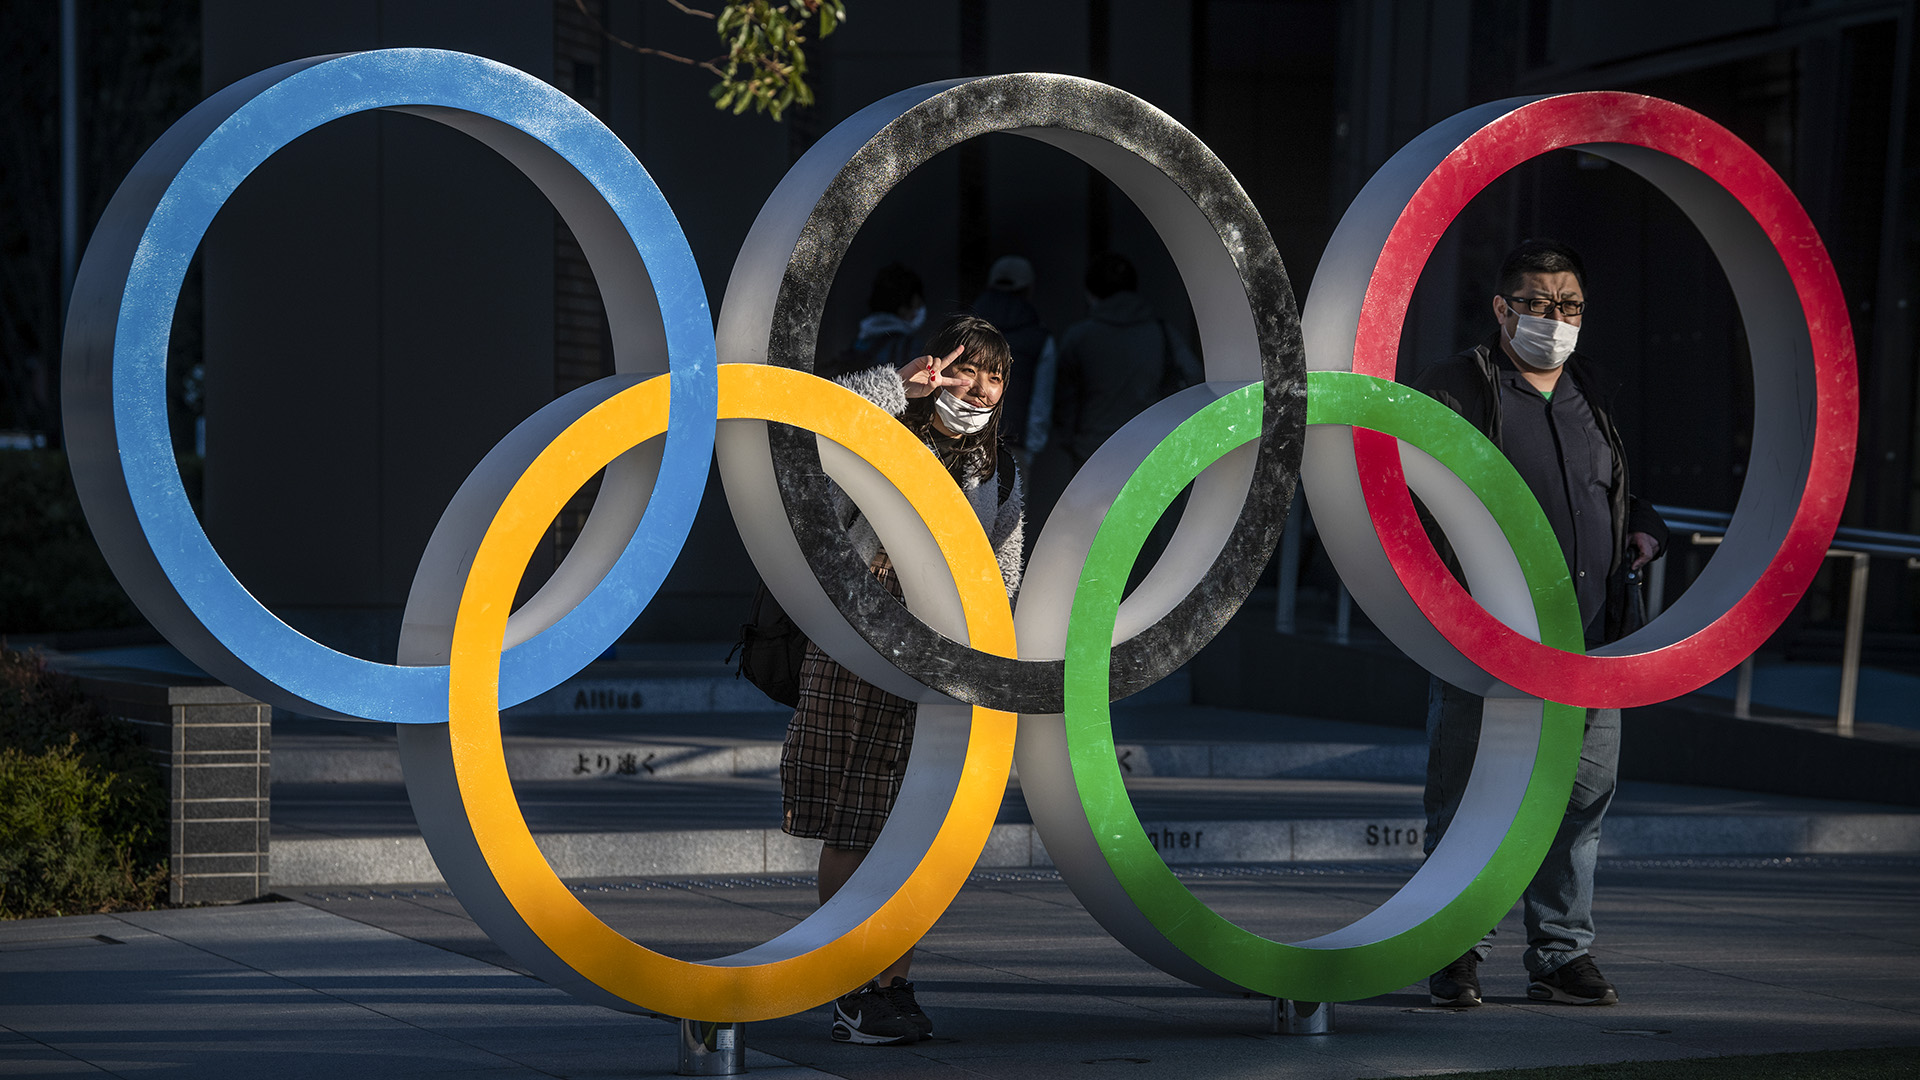 Best places to watch Tokyo Olympics in London